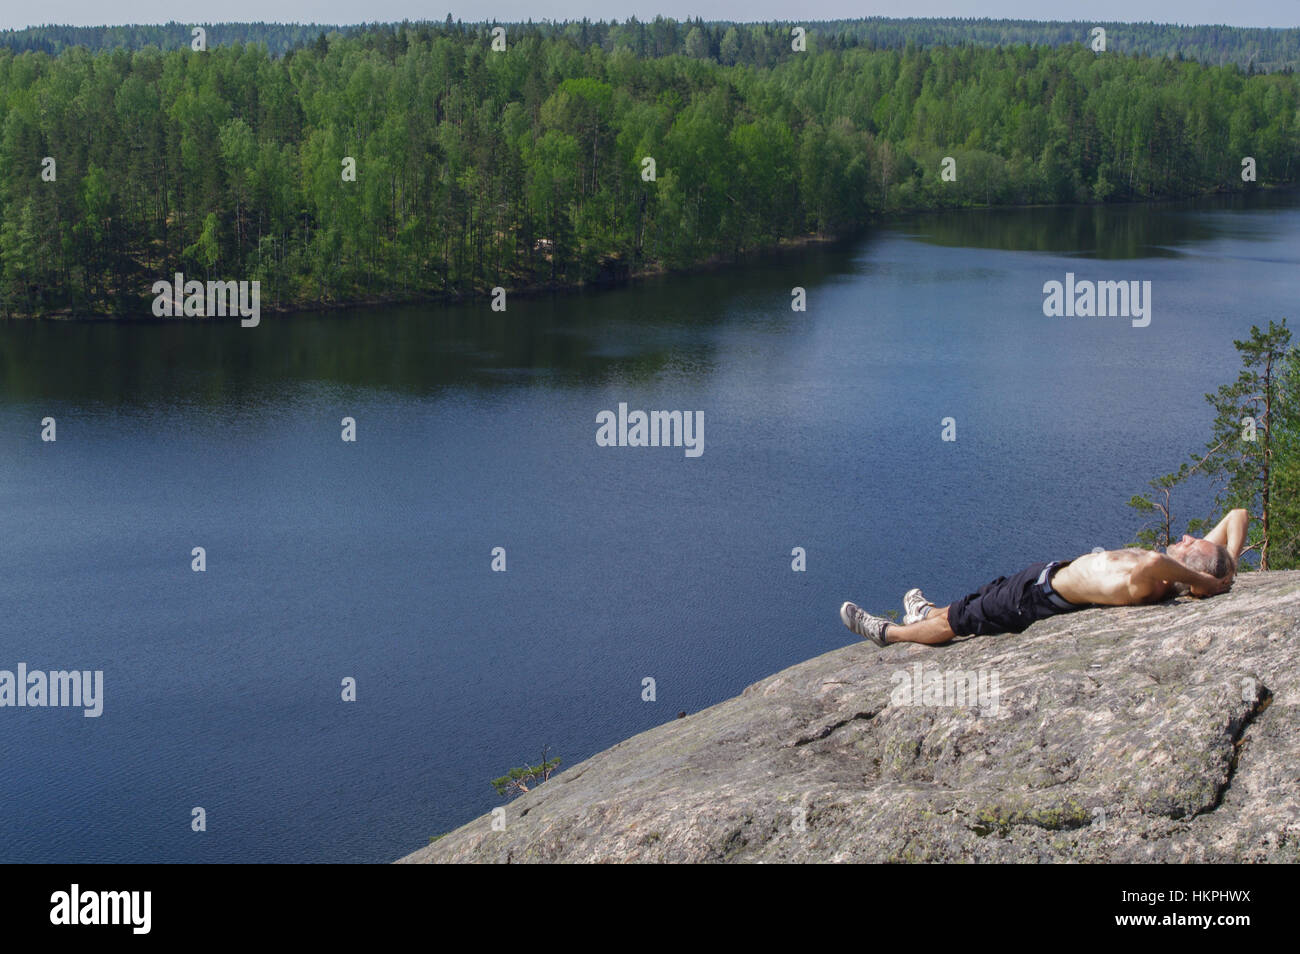 a happy young man laying on a rocky slope above a lake - Stock Image